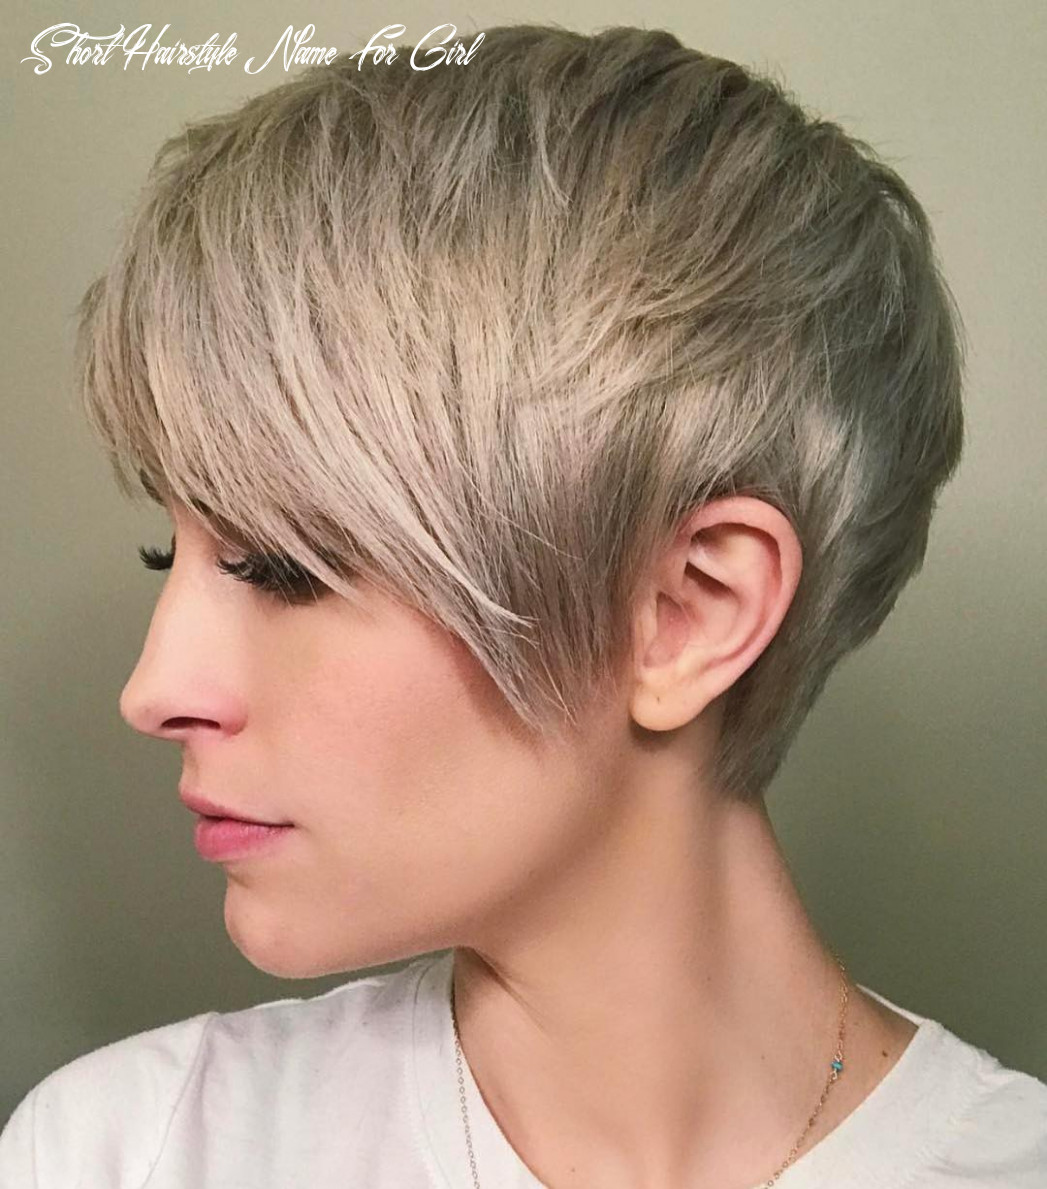 11 best short straight hairstyle trends 11 short hairstyle name for girl